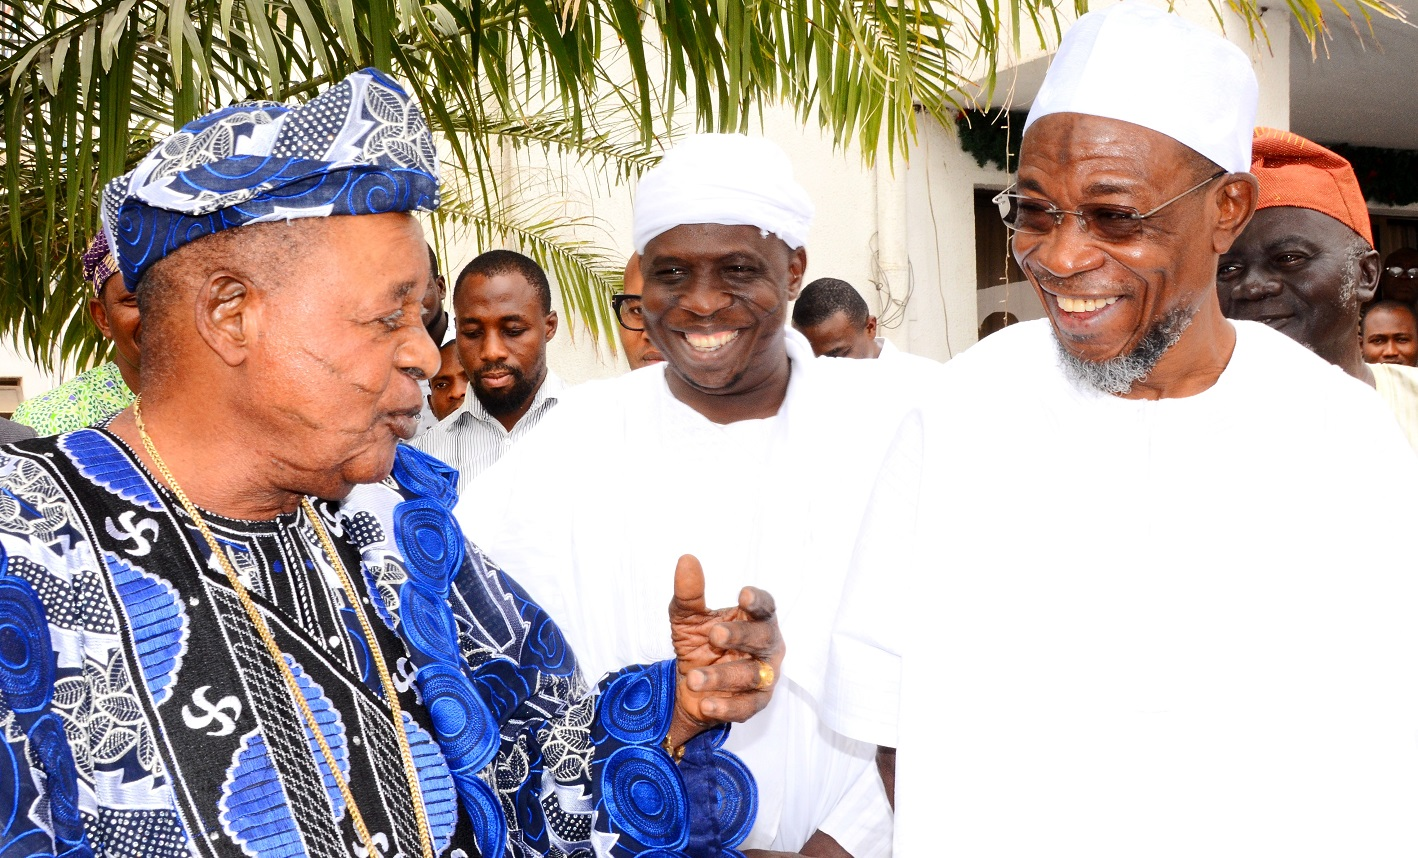 Governor State of Osun, Ogbeni Rauf Aregbesola (right),  the Alaafin of Oyo, Oba Lamidi Olayiwola Adeyemi (left) and Imam Daud imran Tijani (middle),during the conferment of Omoluabi of Yorubaland title on Aregbesola by Alaafin,at Government House, Osogbo,on Tuesday 05/1/2016.